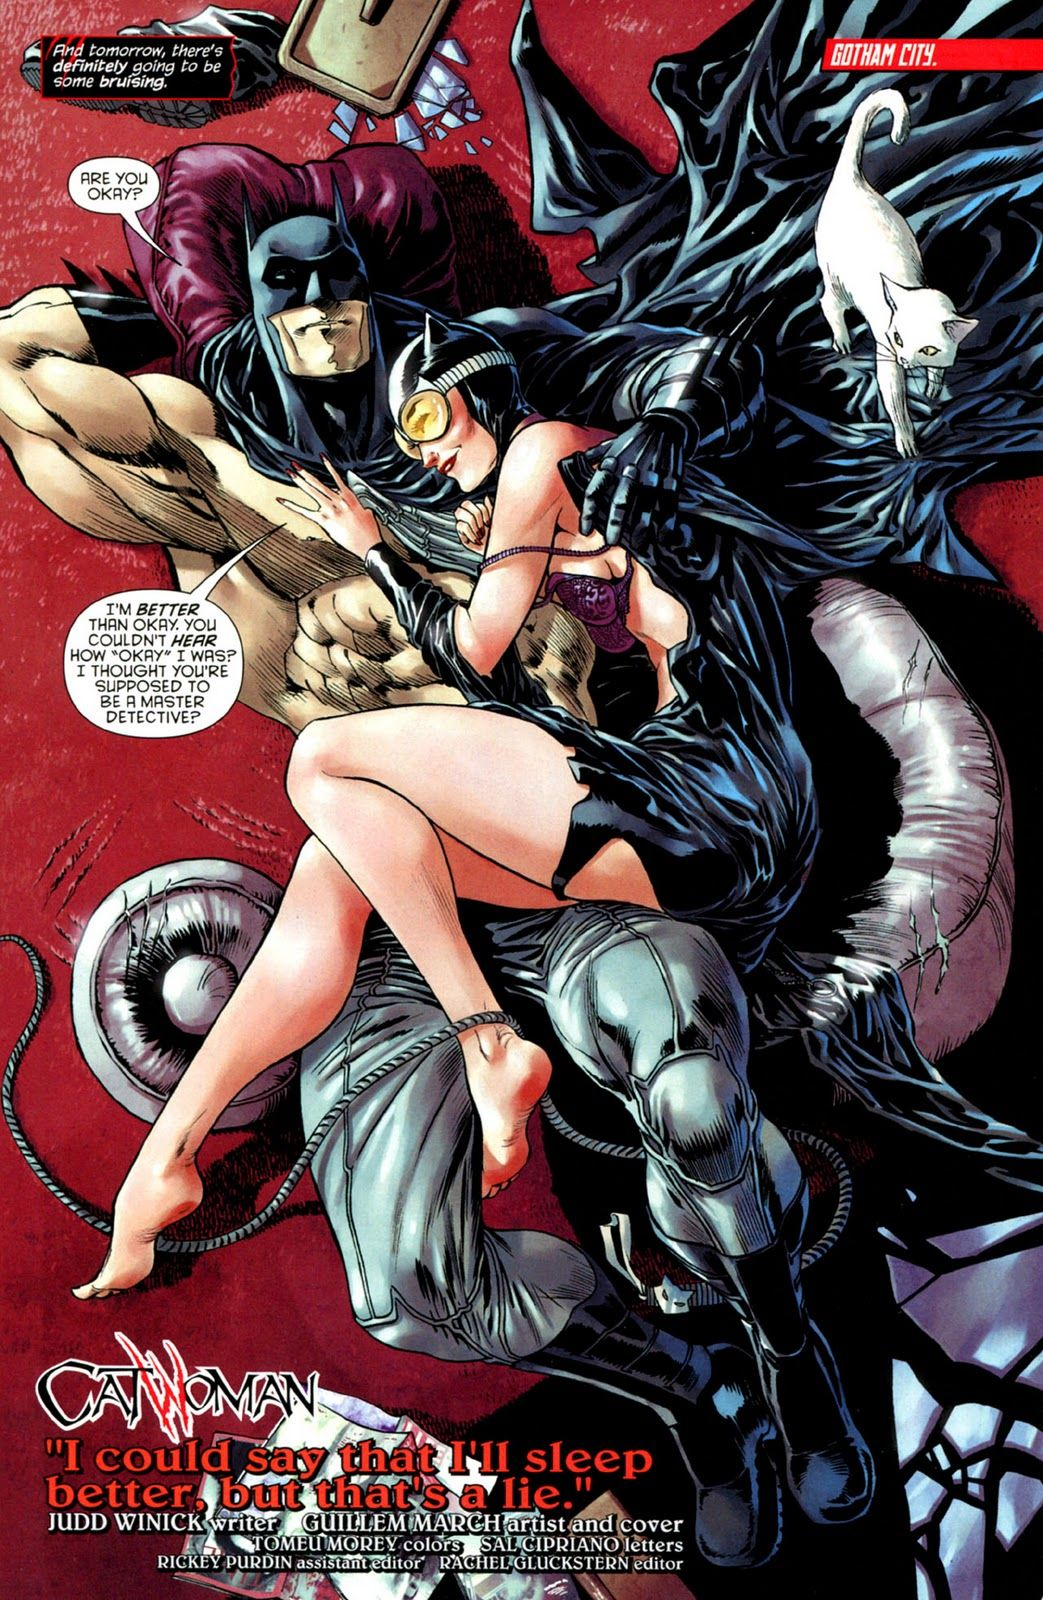 Dc universe hot naked